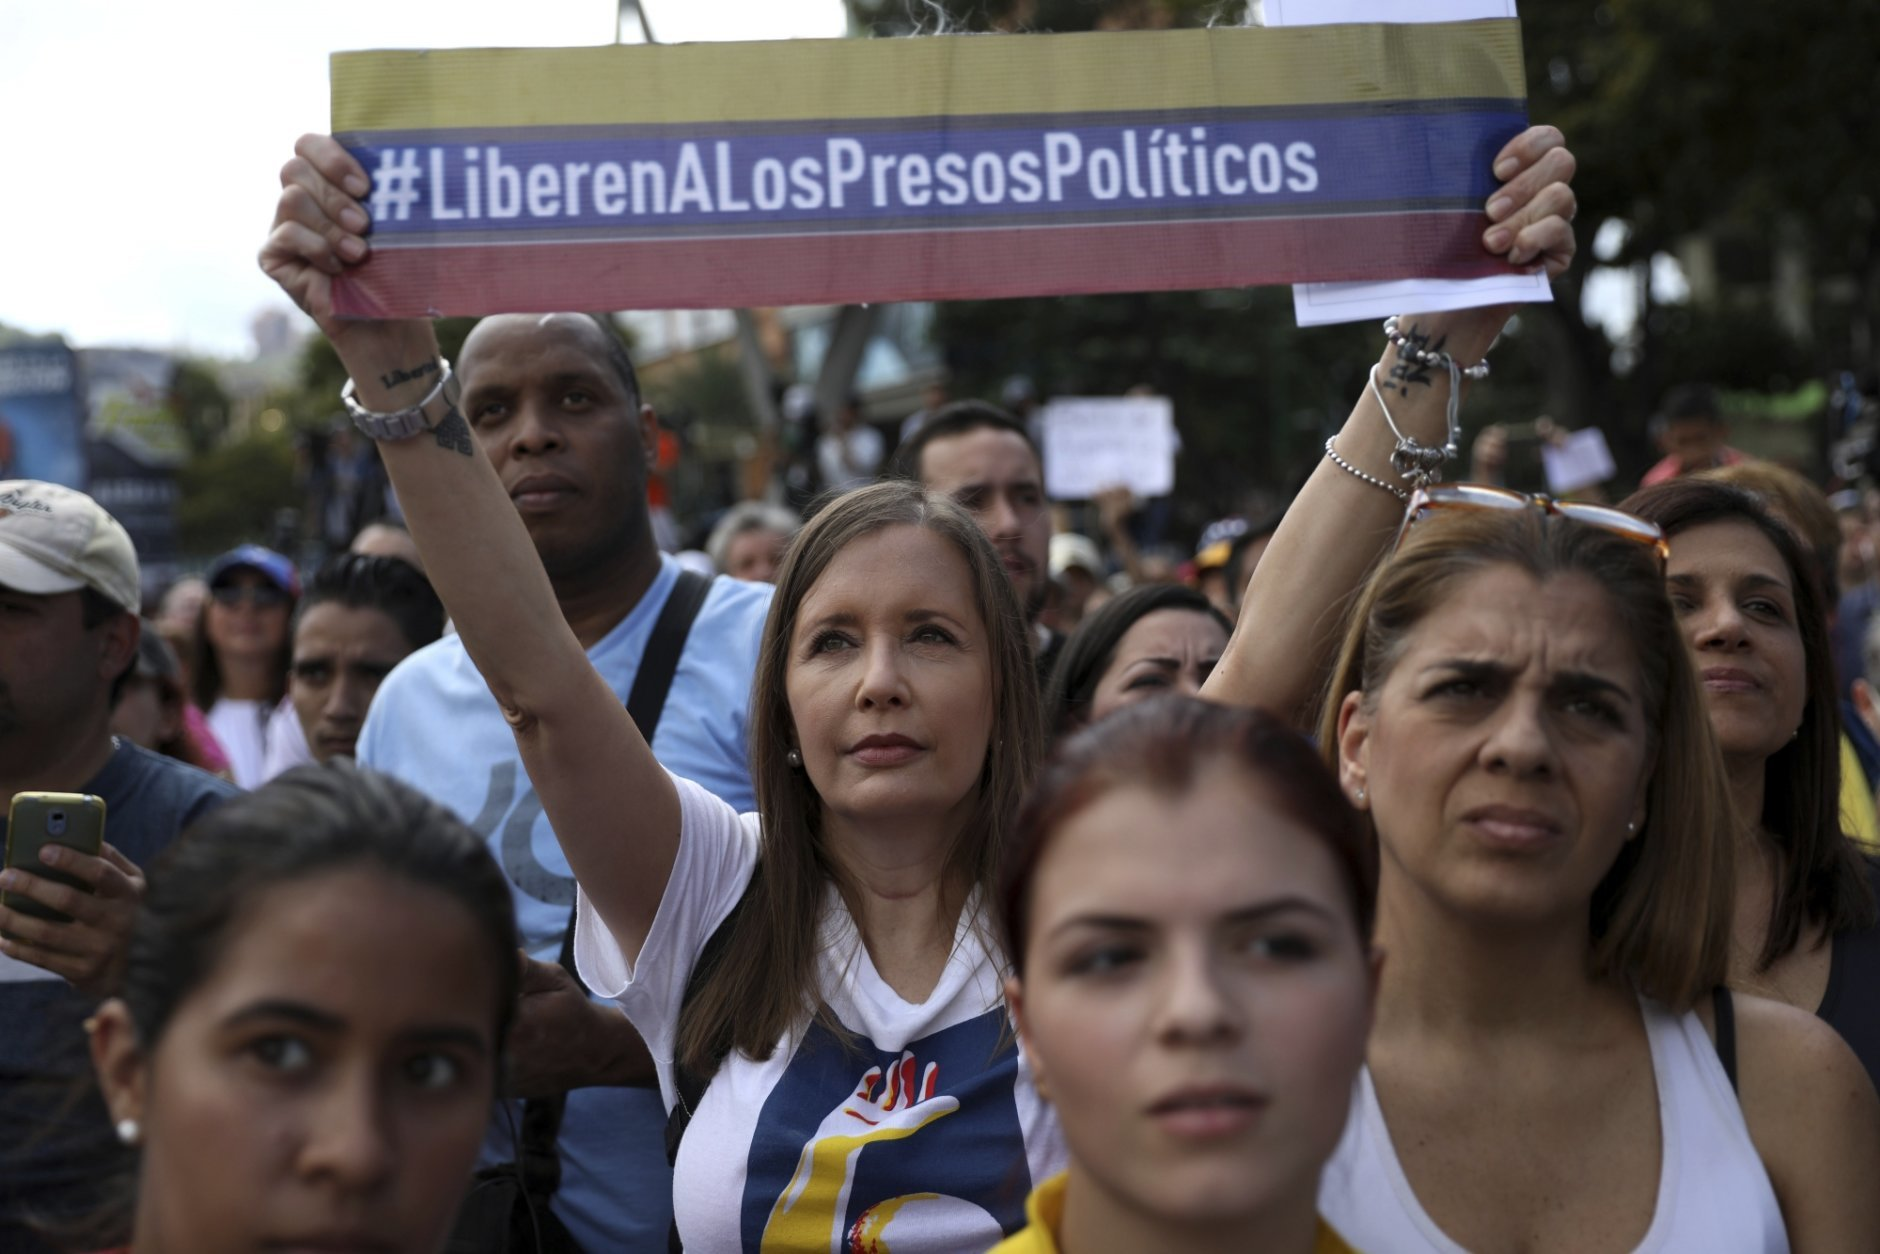 """A member of the opposition holds a banner with a message that reads in Spanish: """"free the political prisoners,"""" during a gathering to propose amnesty laws for police and military, in Las Mercedes neighborhood of Caracas, Venezuela, Saturday, Jan. 29, 2019. Venezuela's political showdown moves to the United Nations where a Security Council meeting called by the United States will pit backers of President Nicolas Maduro against the Trump administration and supporters of the country's self-declared interim leader Juan Guaido. (AP Photo/Rodrigo Abd)"""